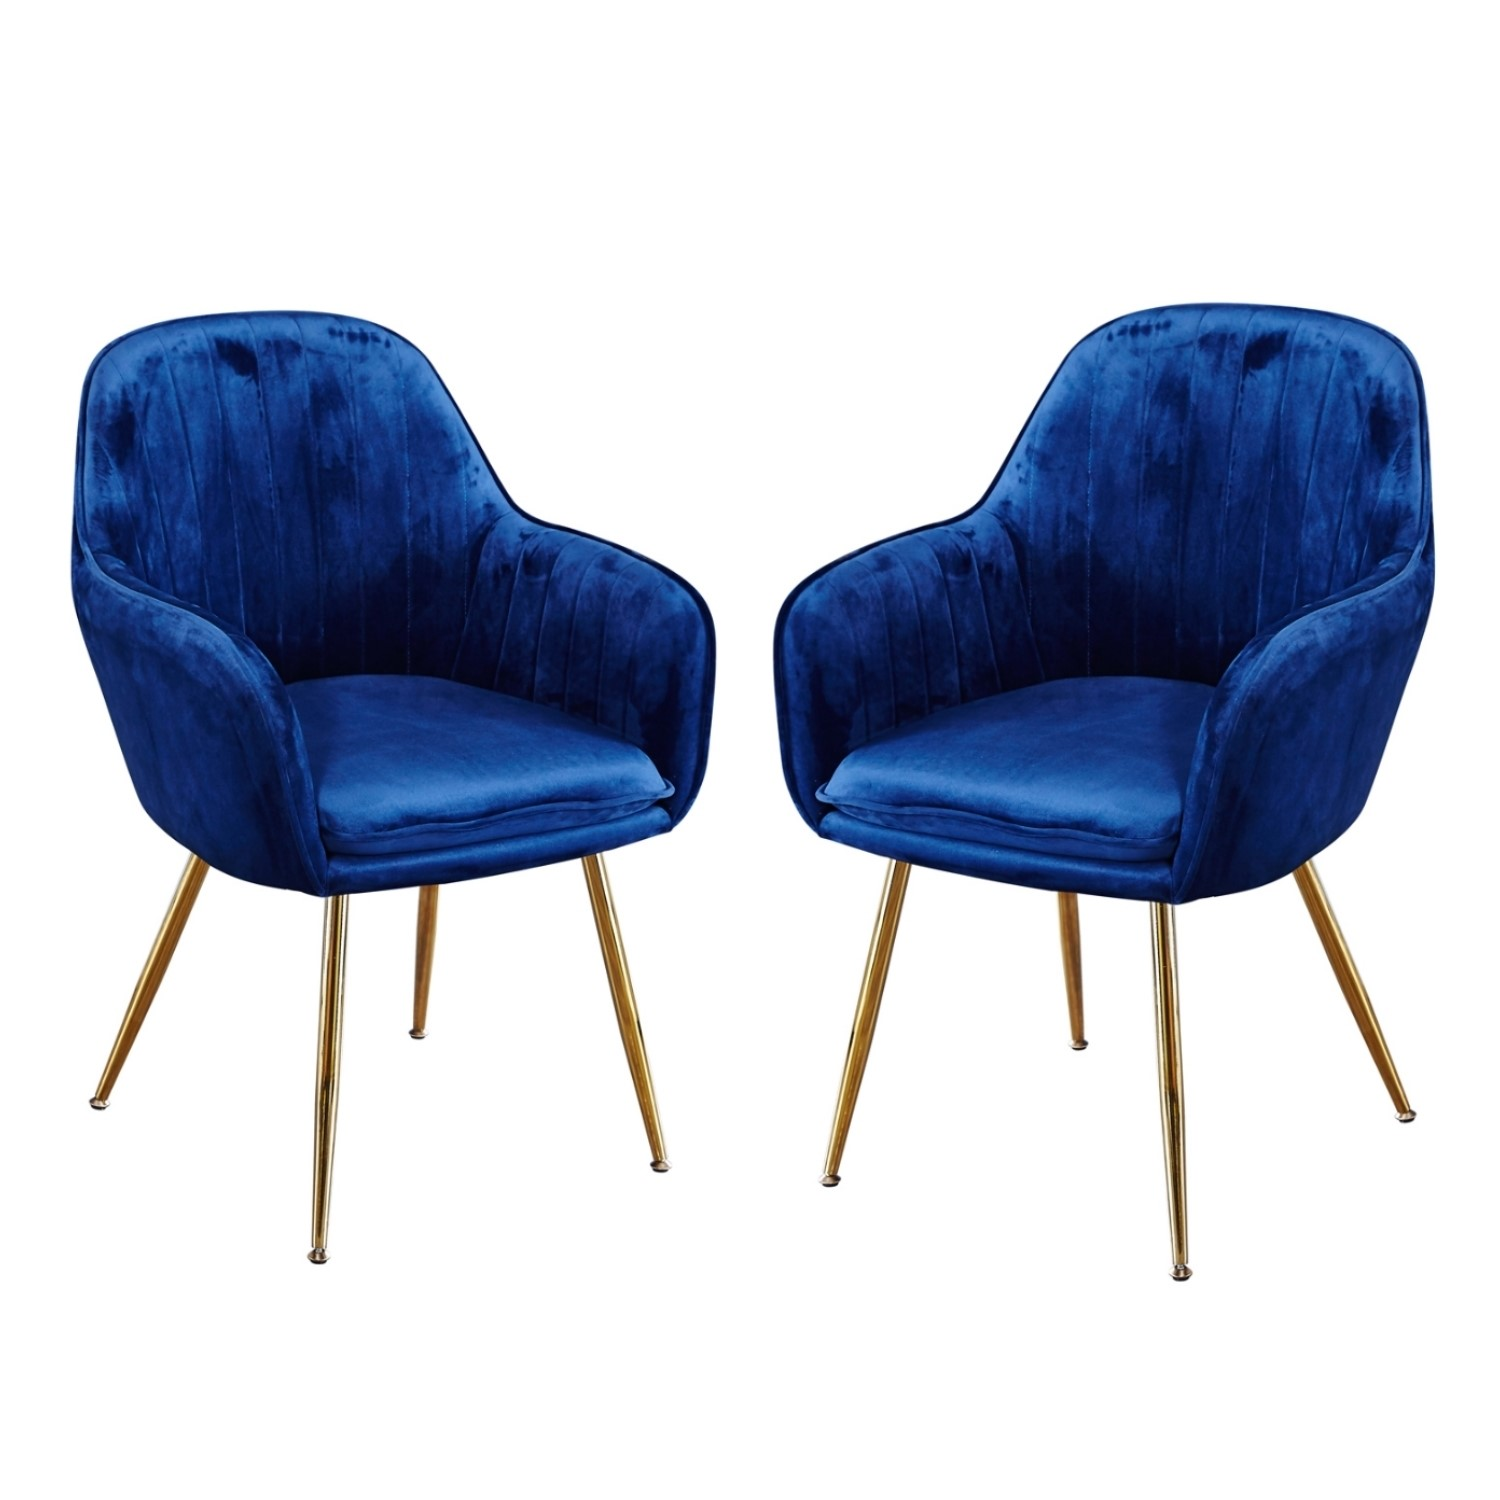 Picture of: Set Of 2 Blue Velvet Dining Chairs With Gold Legs Lara Furniture123